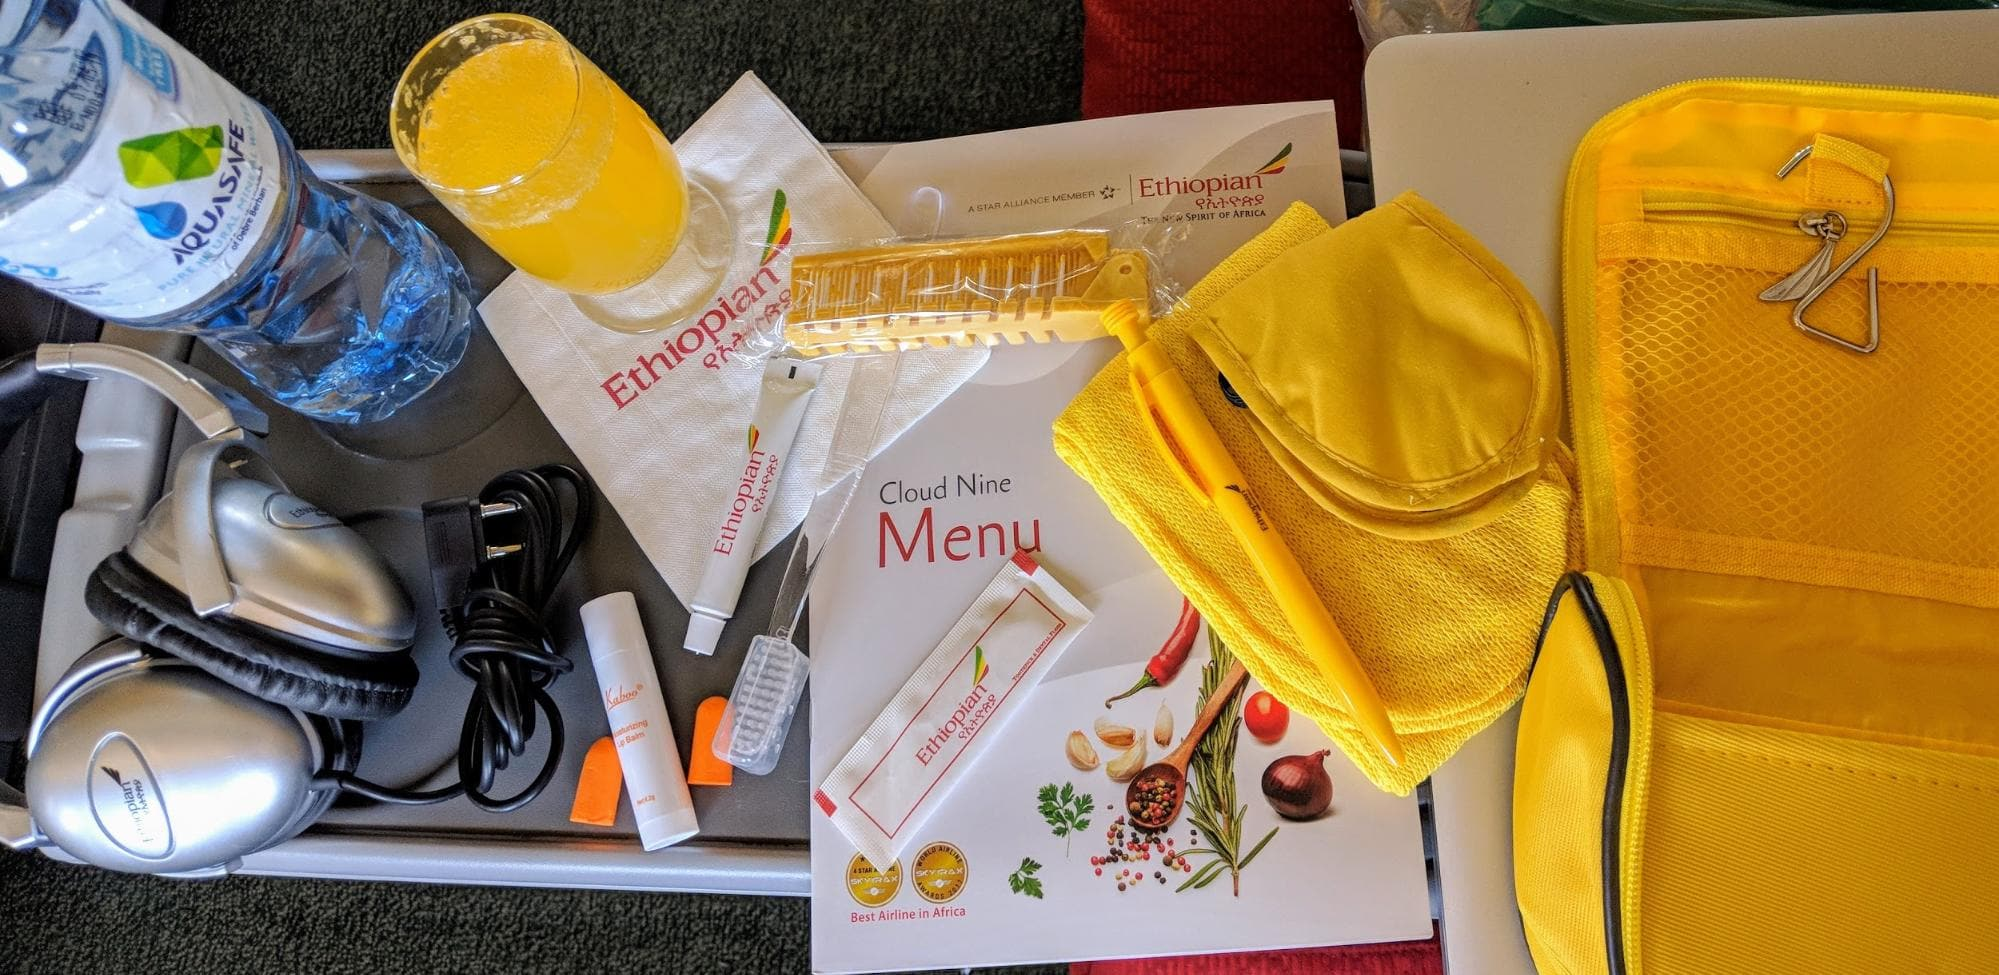 Inside the Business Class amenity kit for Ethiopian Airlines